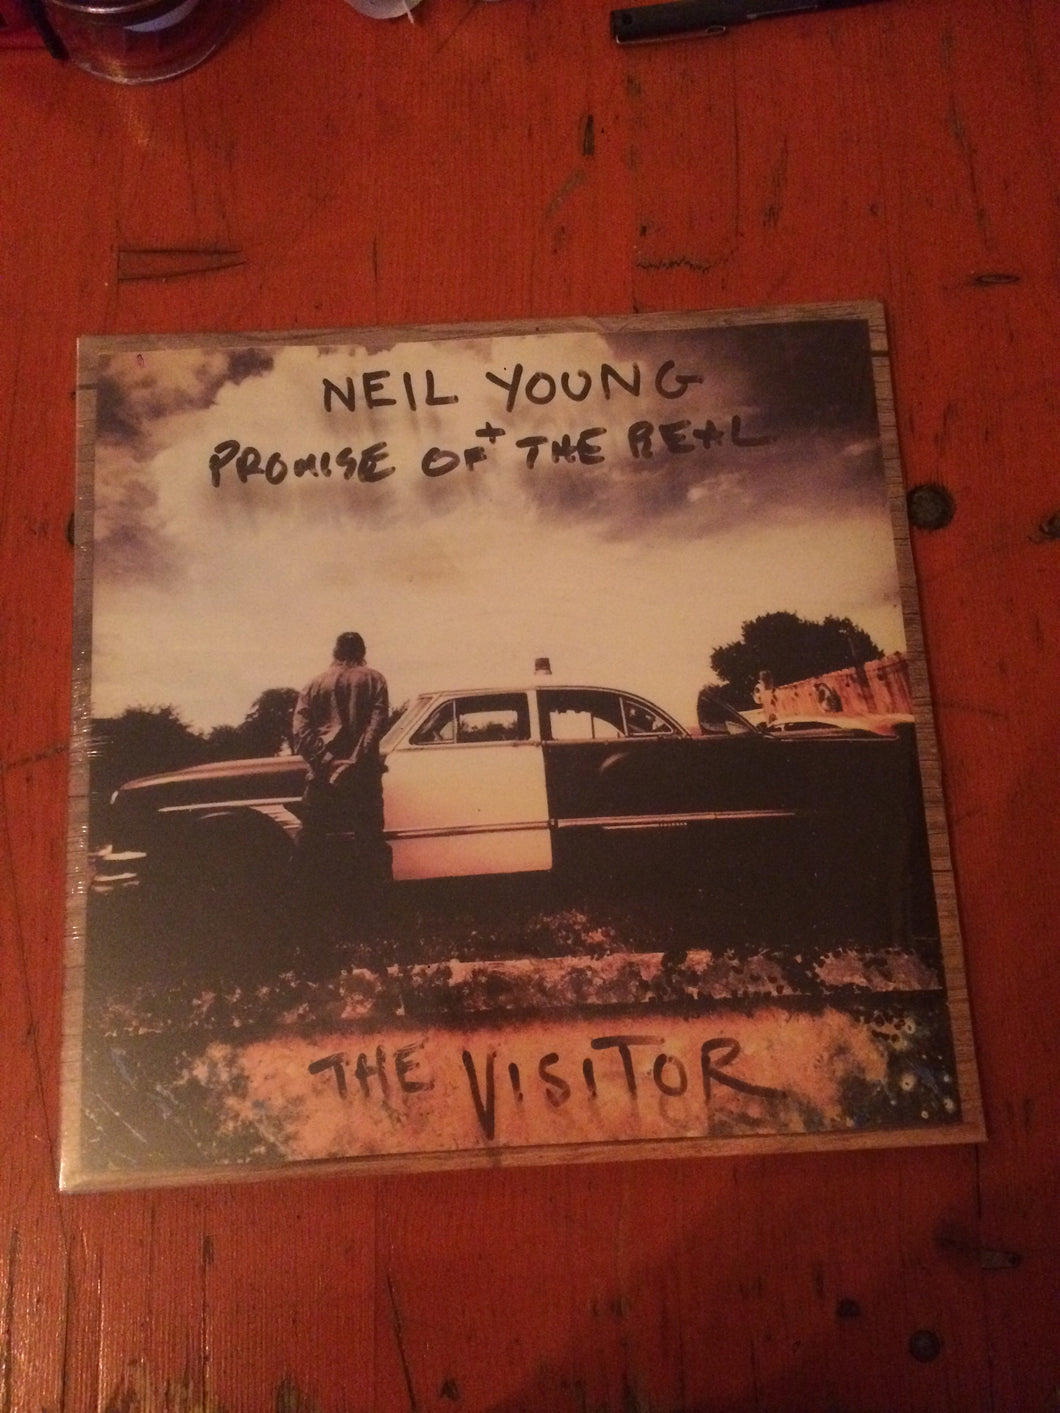 Neil Young + Promise Of The Real - The Visitor